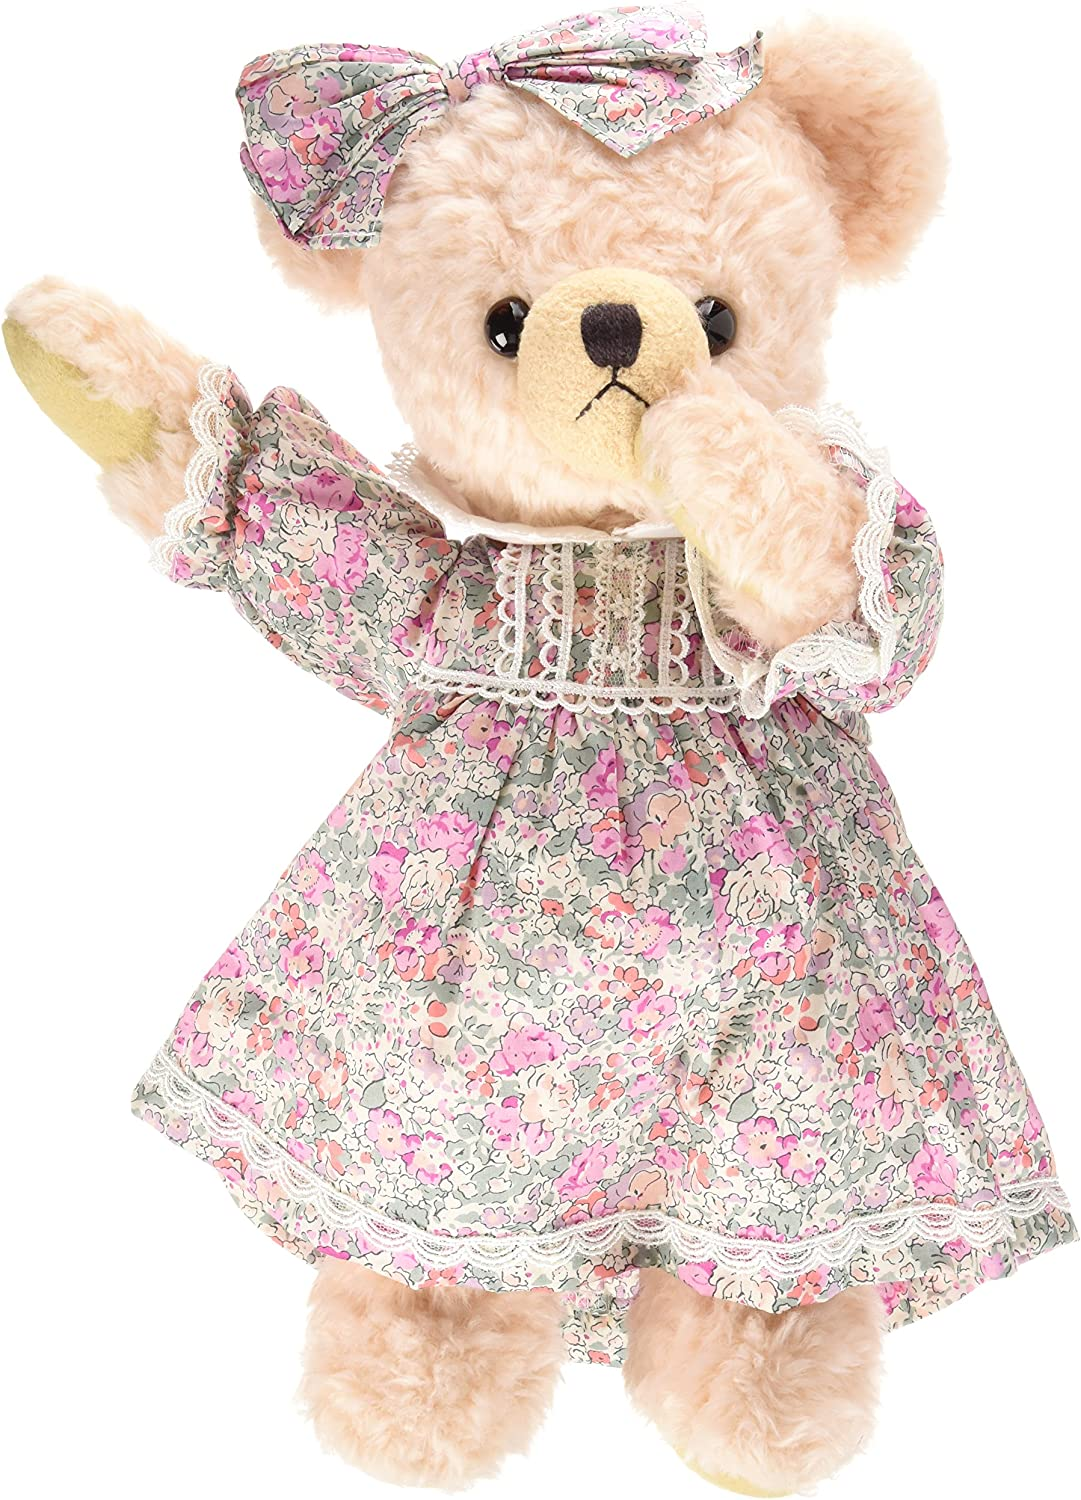 San Arrow Bears collection melody floral dress stuffed M 27cm pink